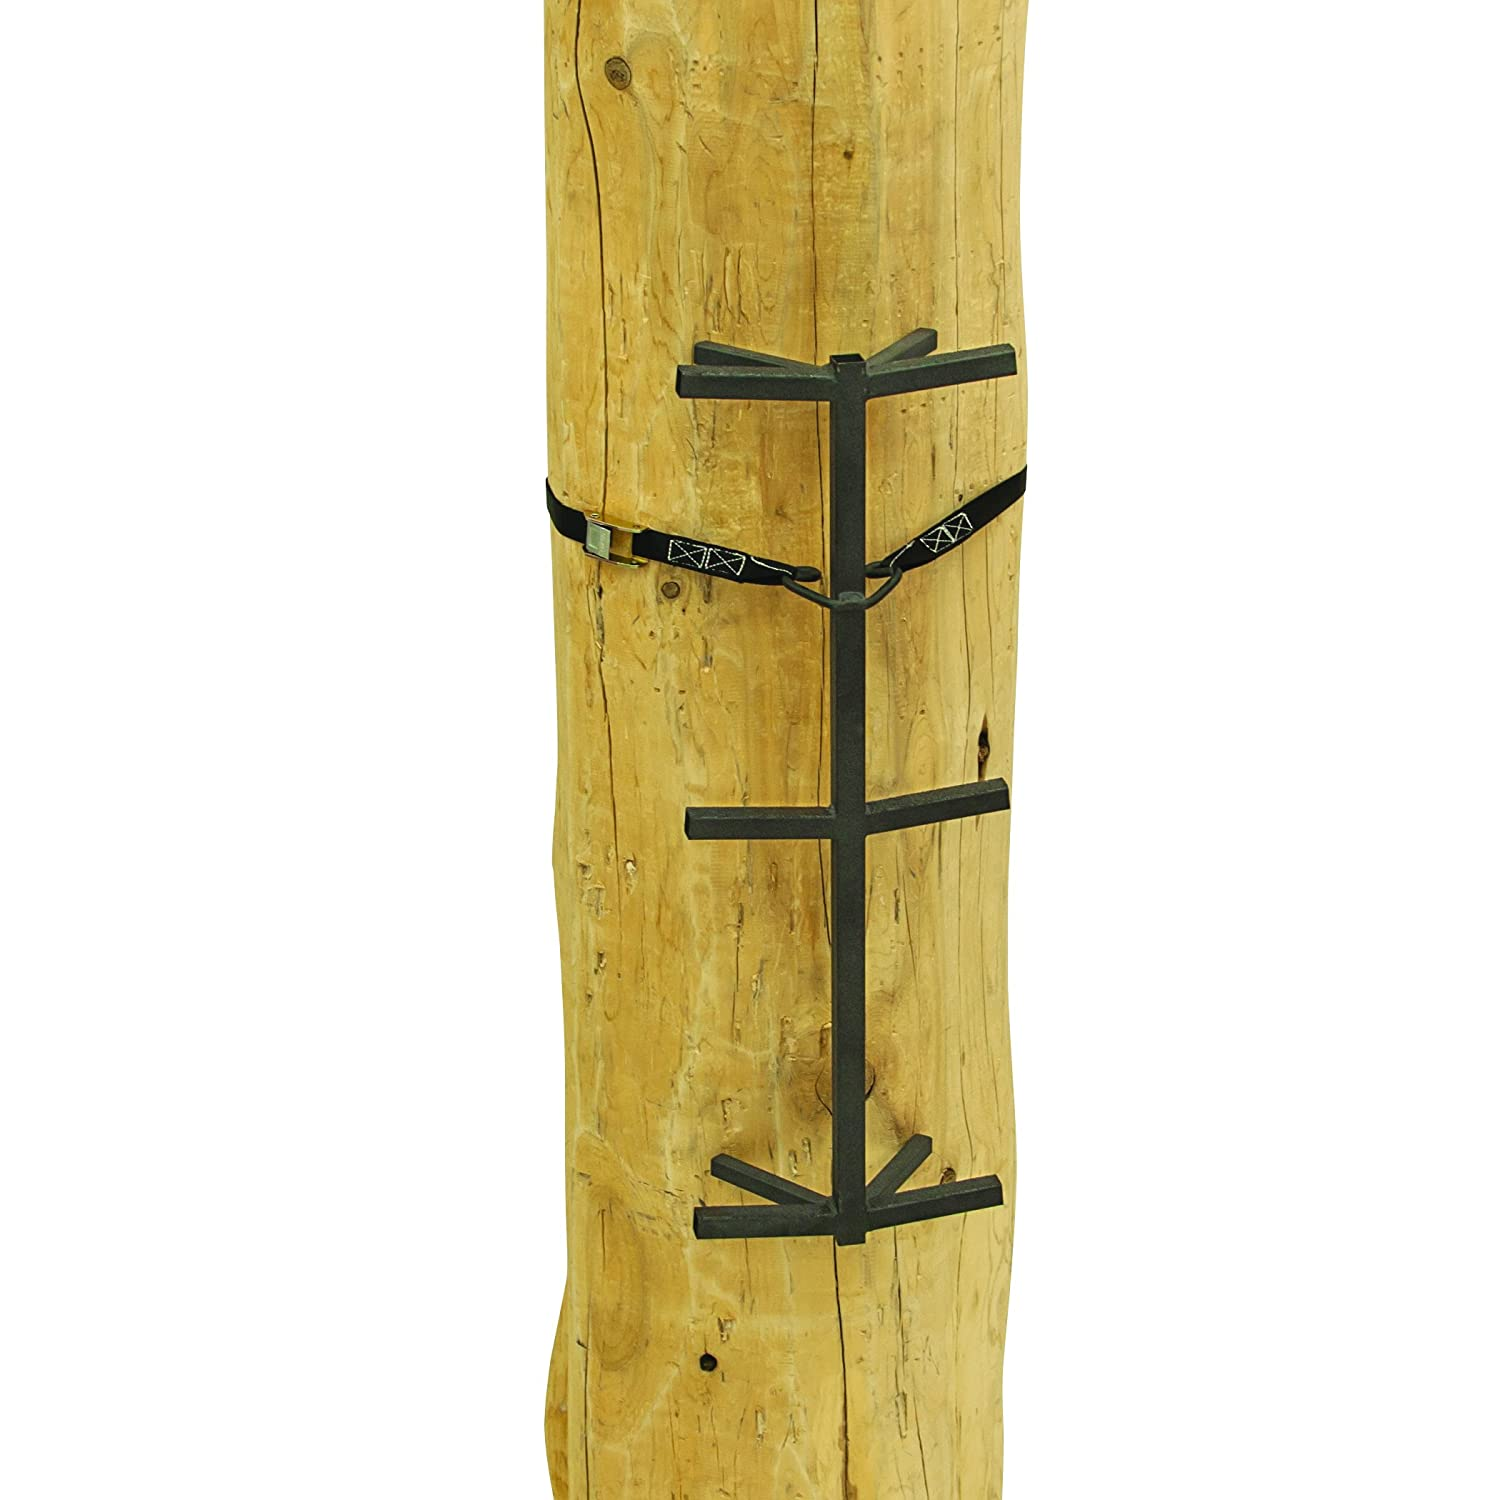 Rivers Edge RE718 Grip Stick 32-Inch Climbing Aid, (Single) River' s Edge Products